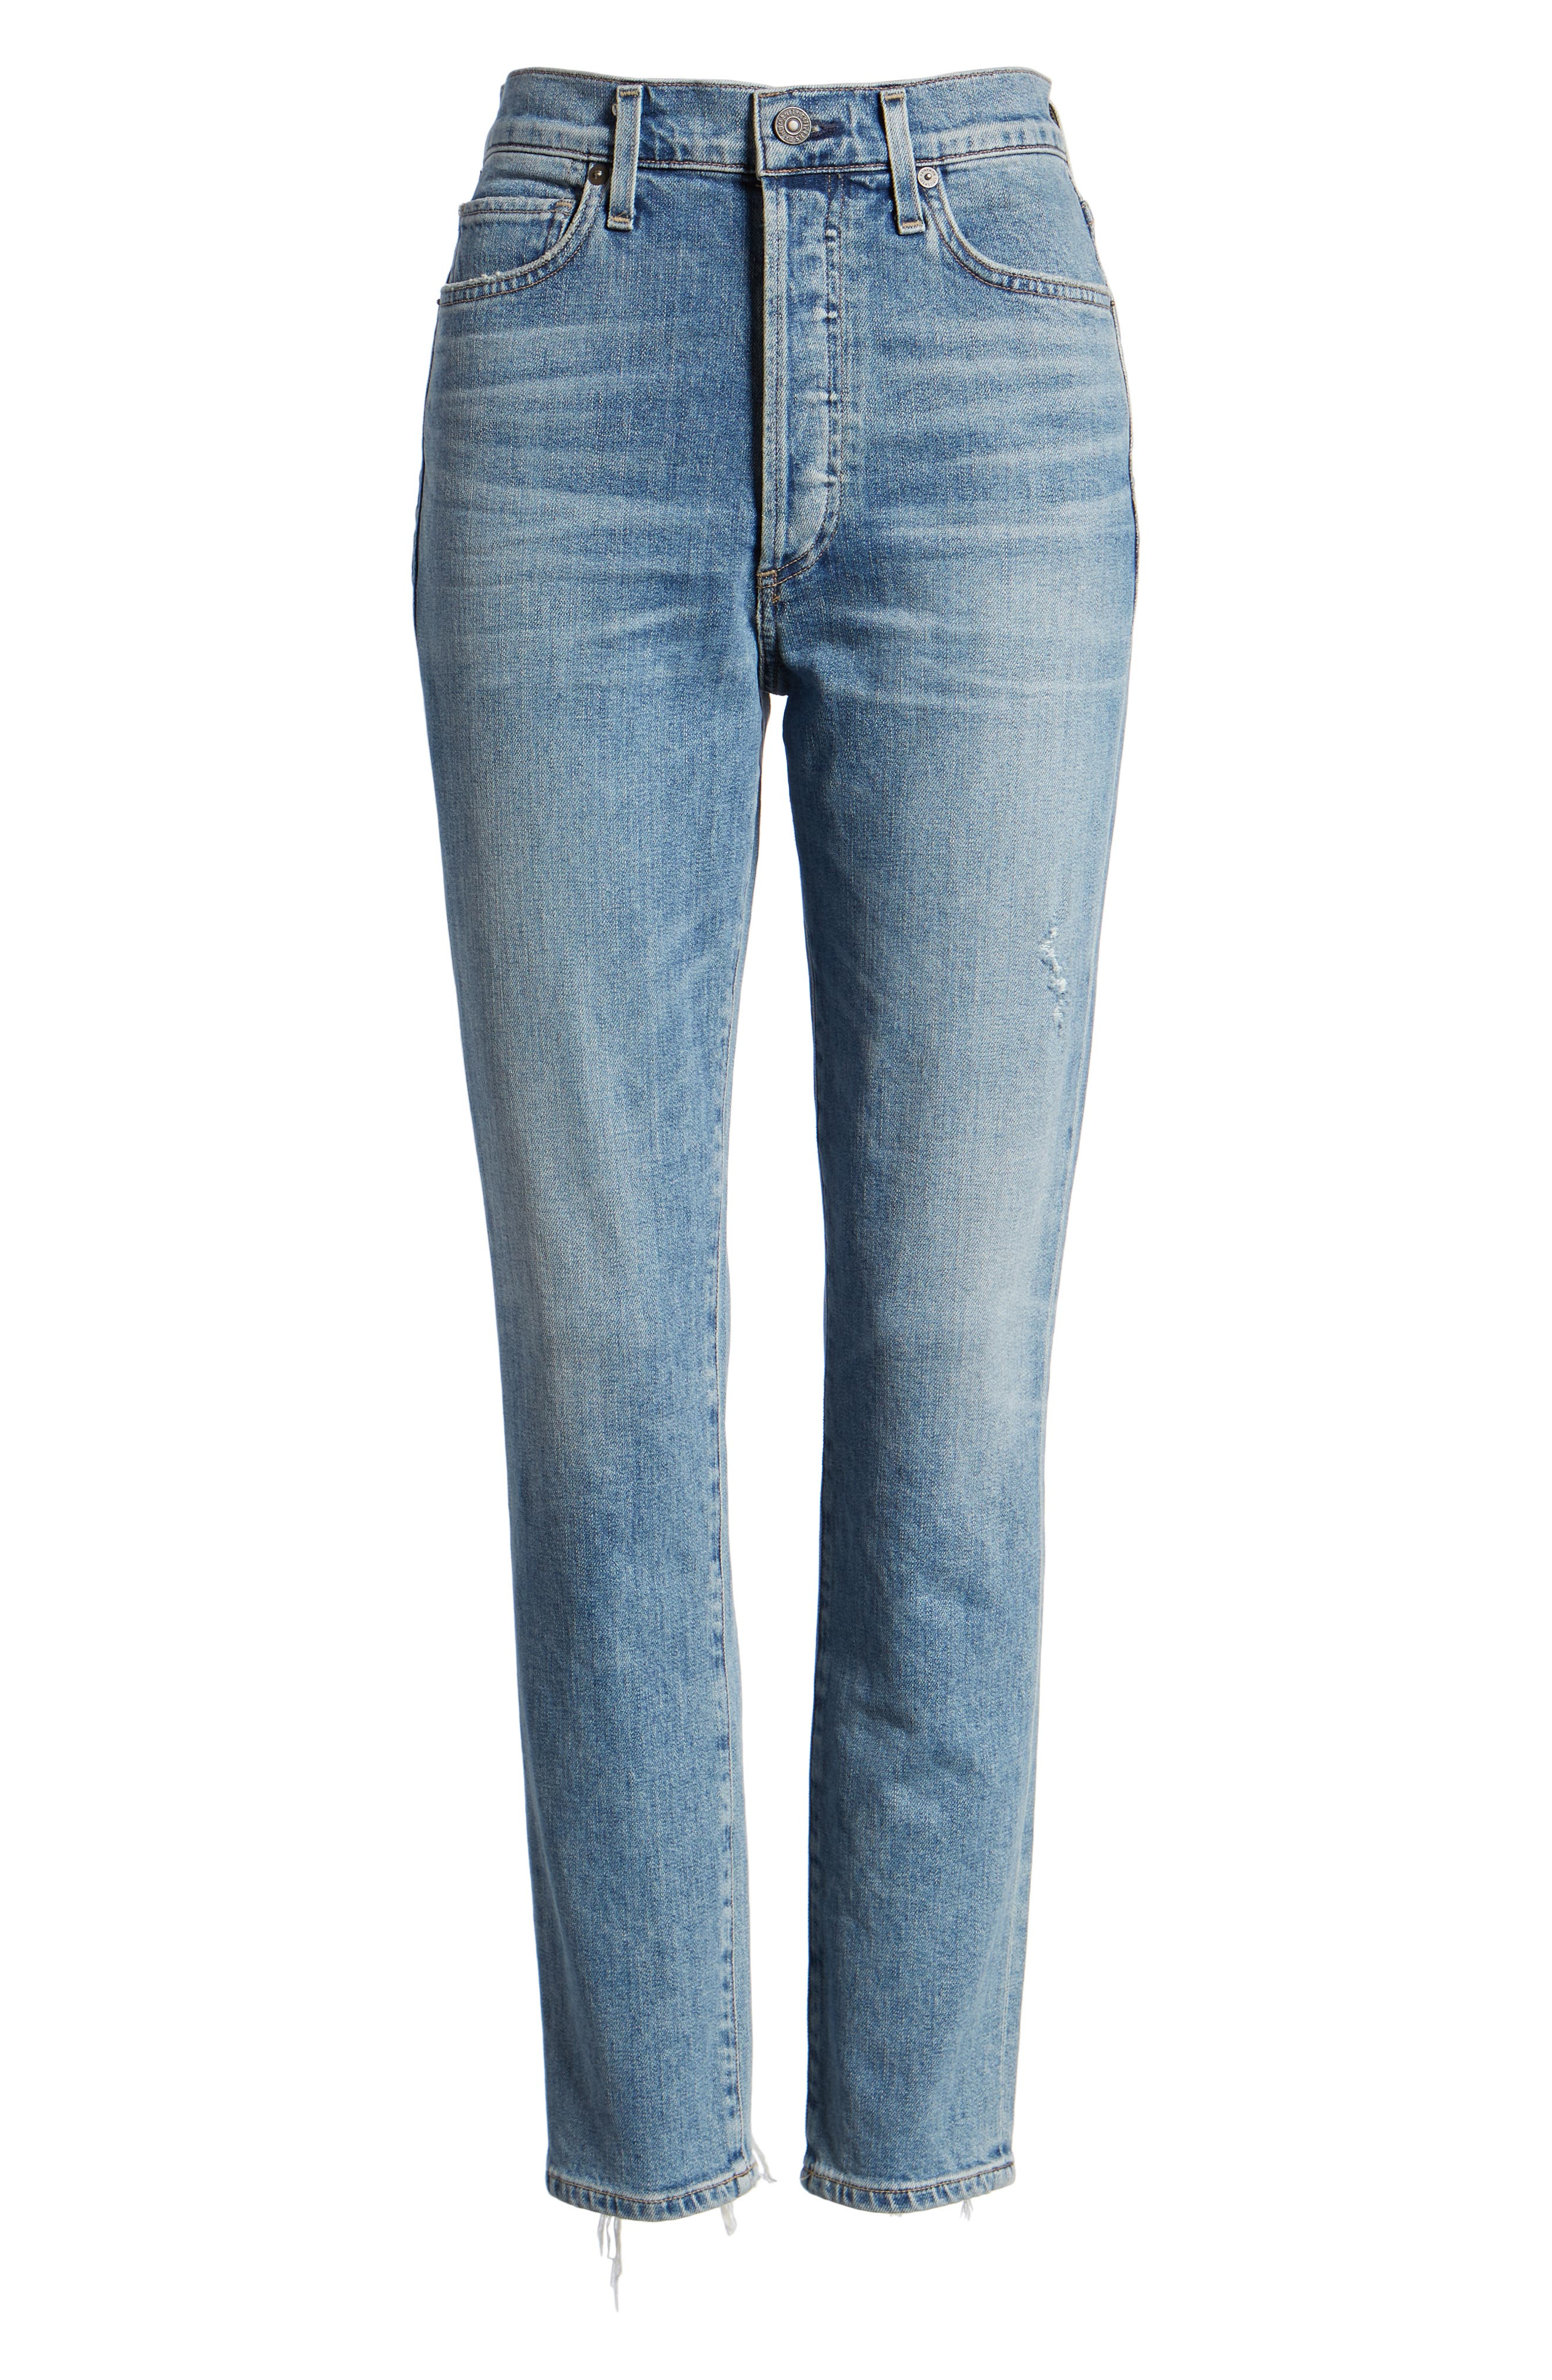 CITIZENS OF HUMANITY, Olivia High Waist Ankle Slim Jeans, Alternate thumbnail 7, color, BACK ROAD